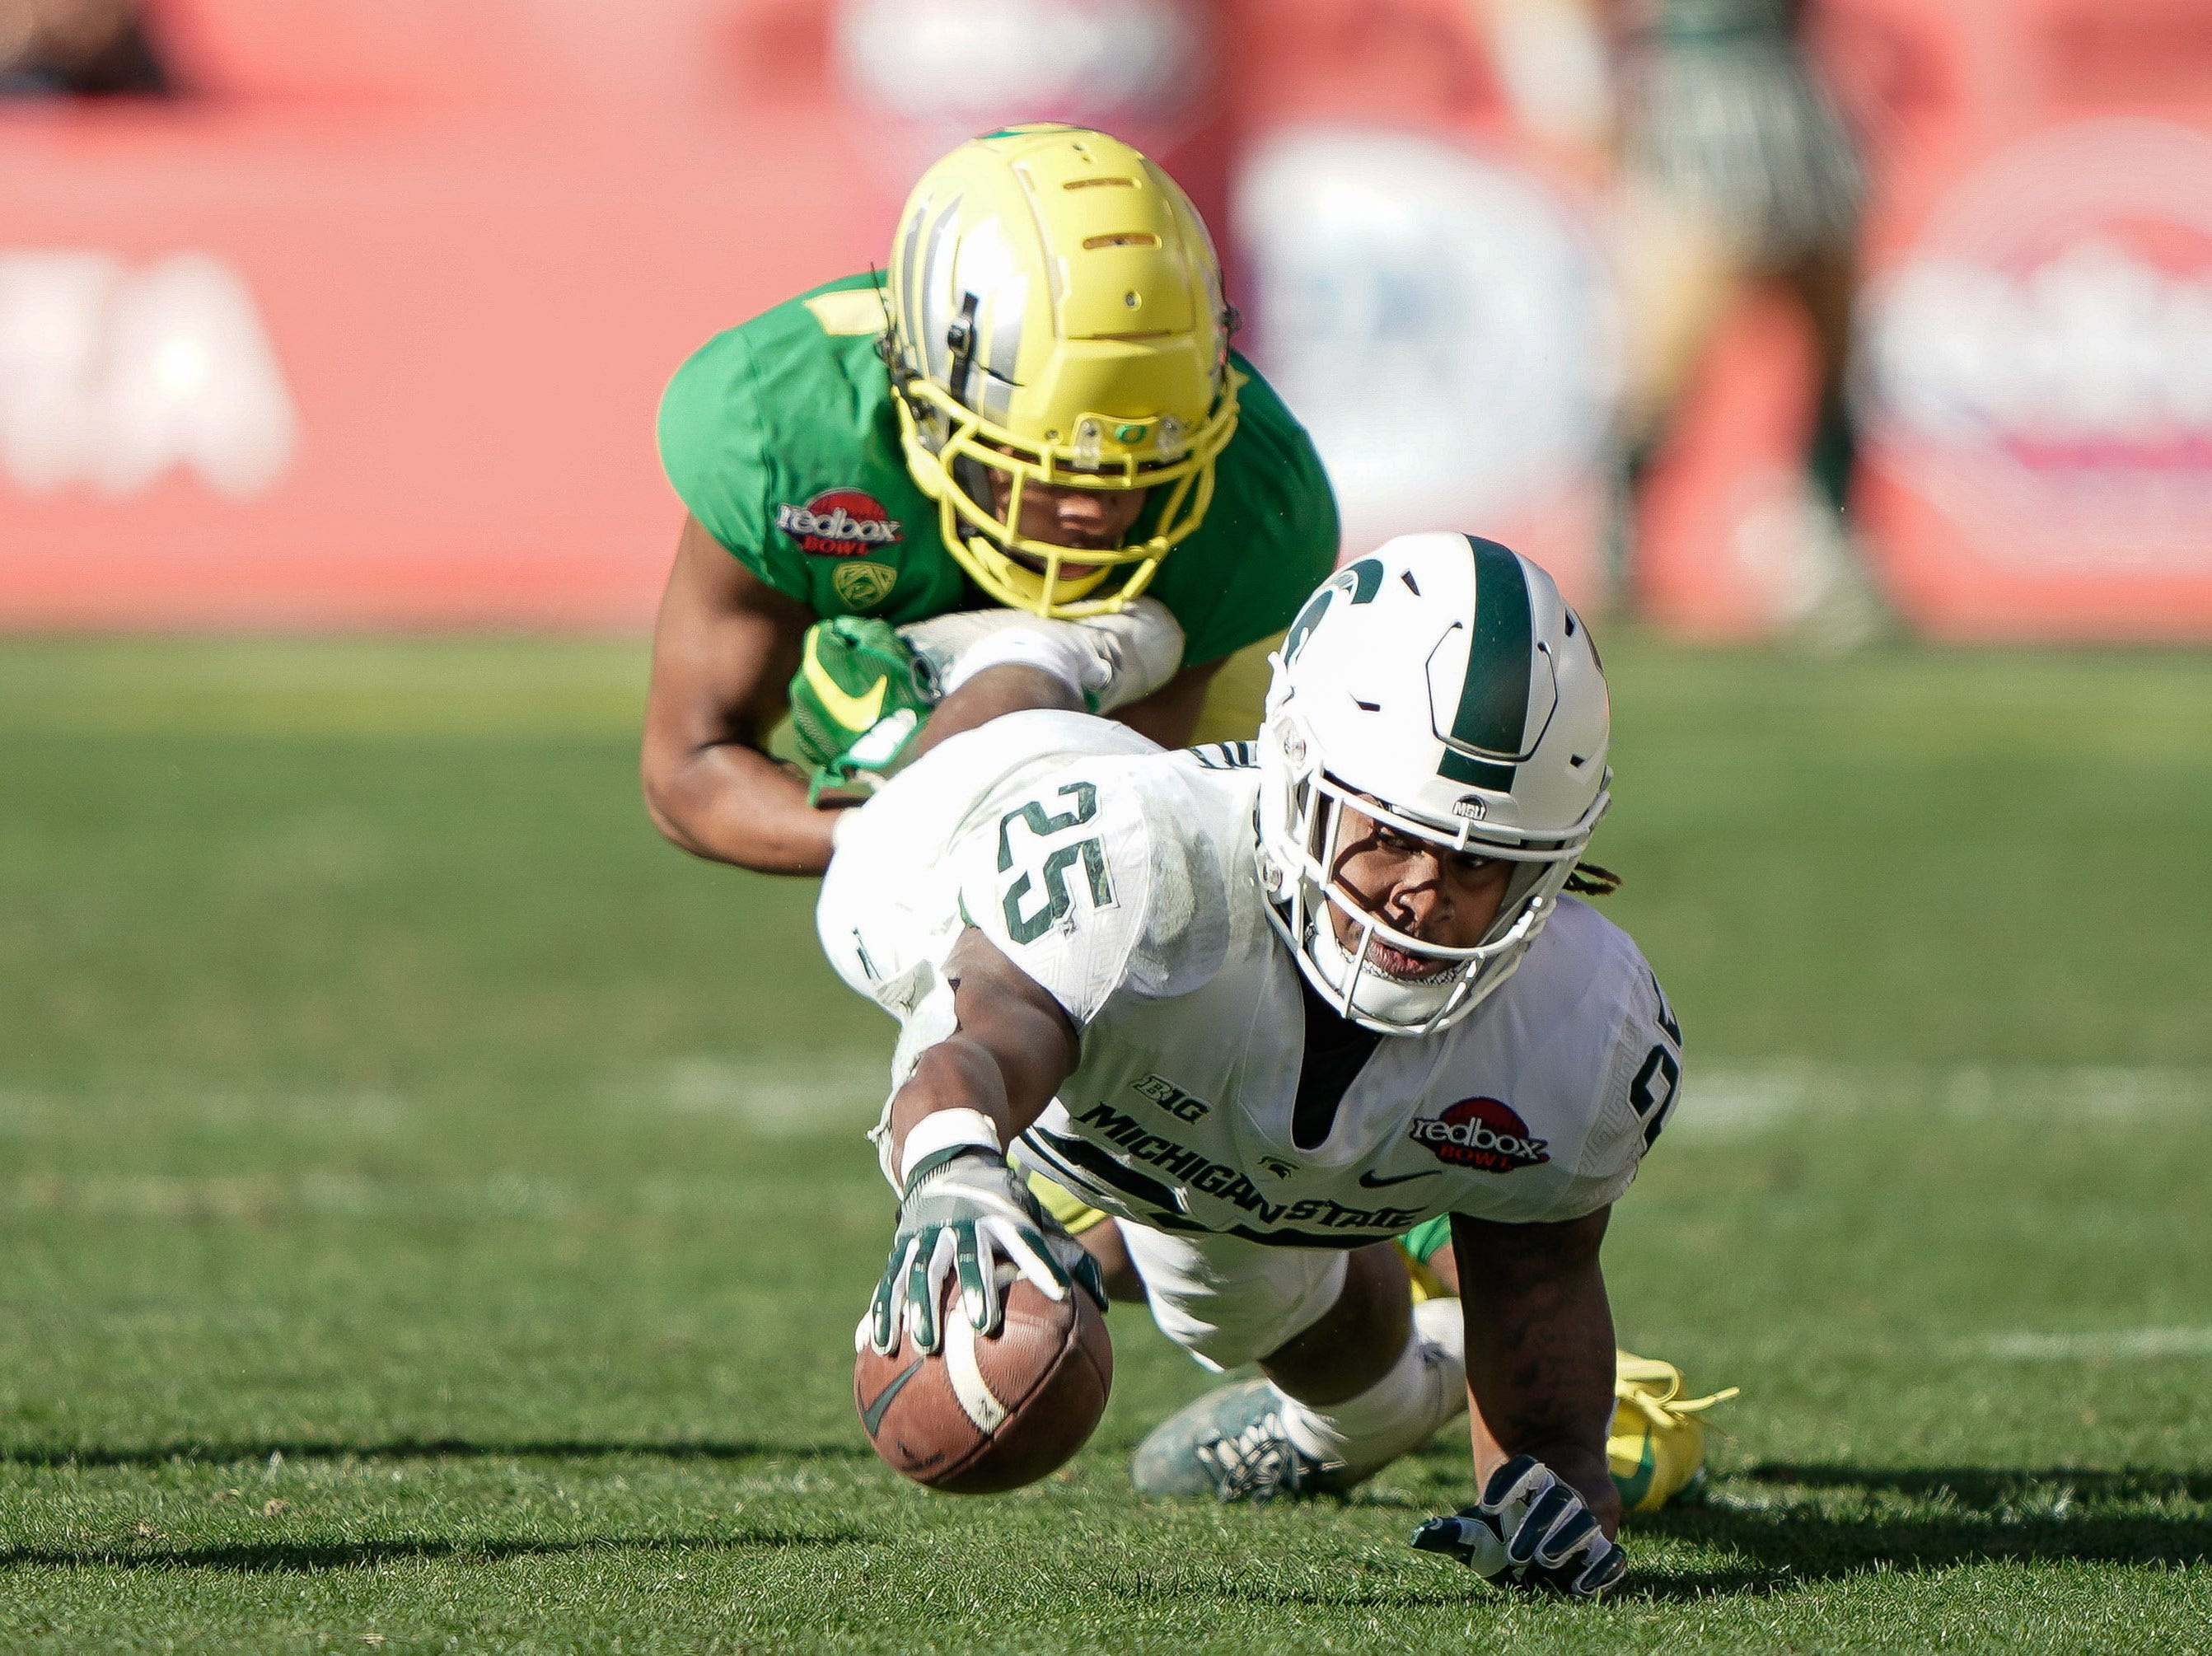 Oregon Ducks cornerback Thomas Graham Jr. (4) tackles Michigan State Spartans wide receiver Darrell Stewart Jr. (25) during the Redbox Bowl.